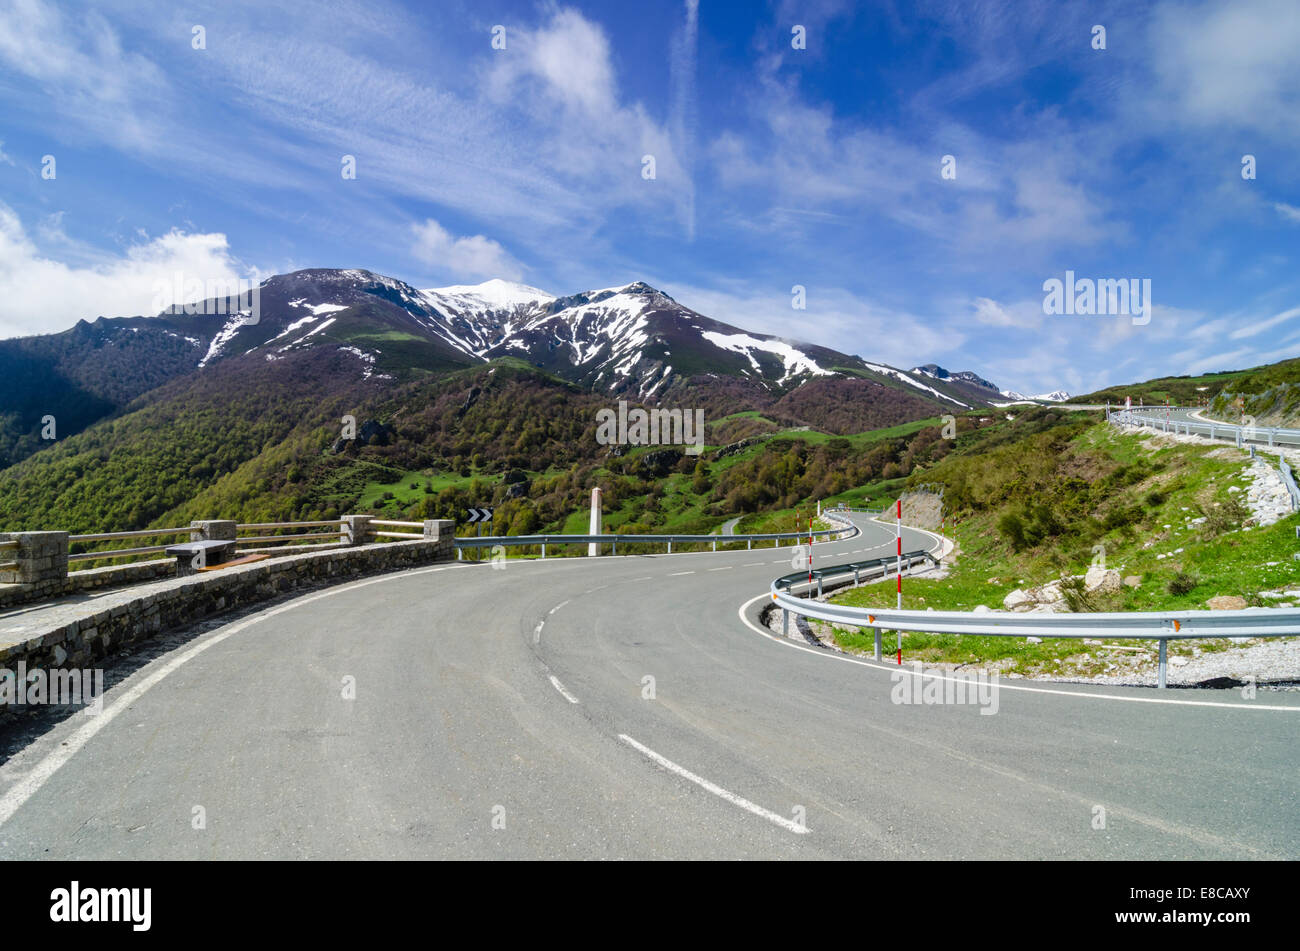 Empty road in the mountains of Cantabria, Spain - Stock Image